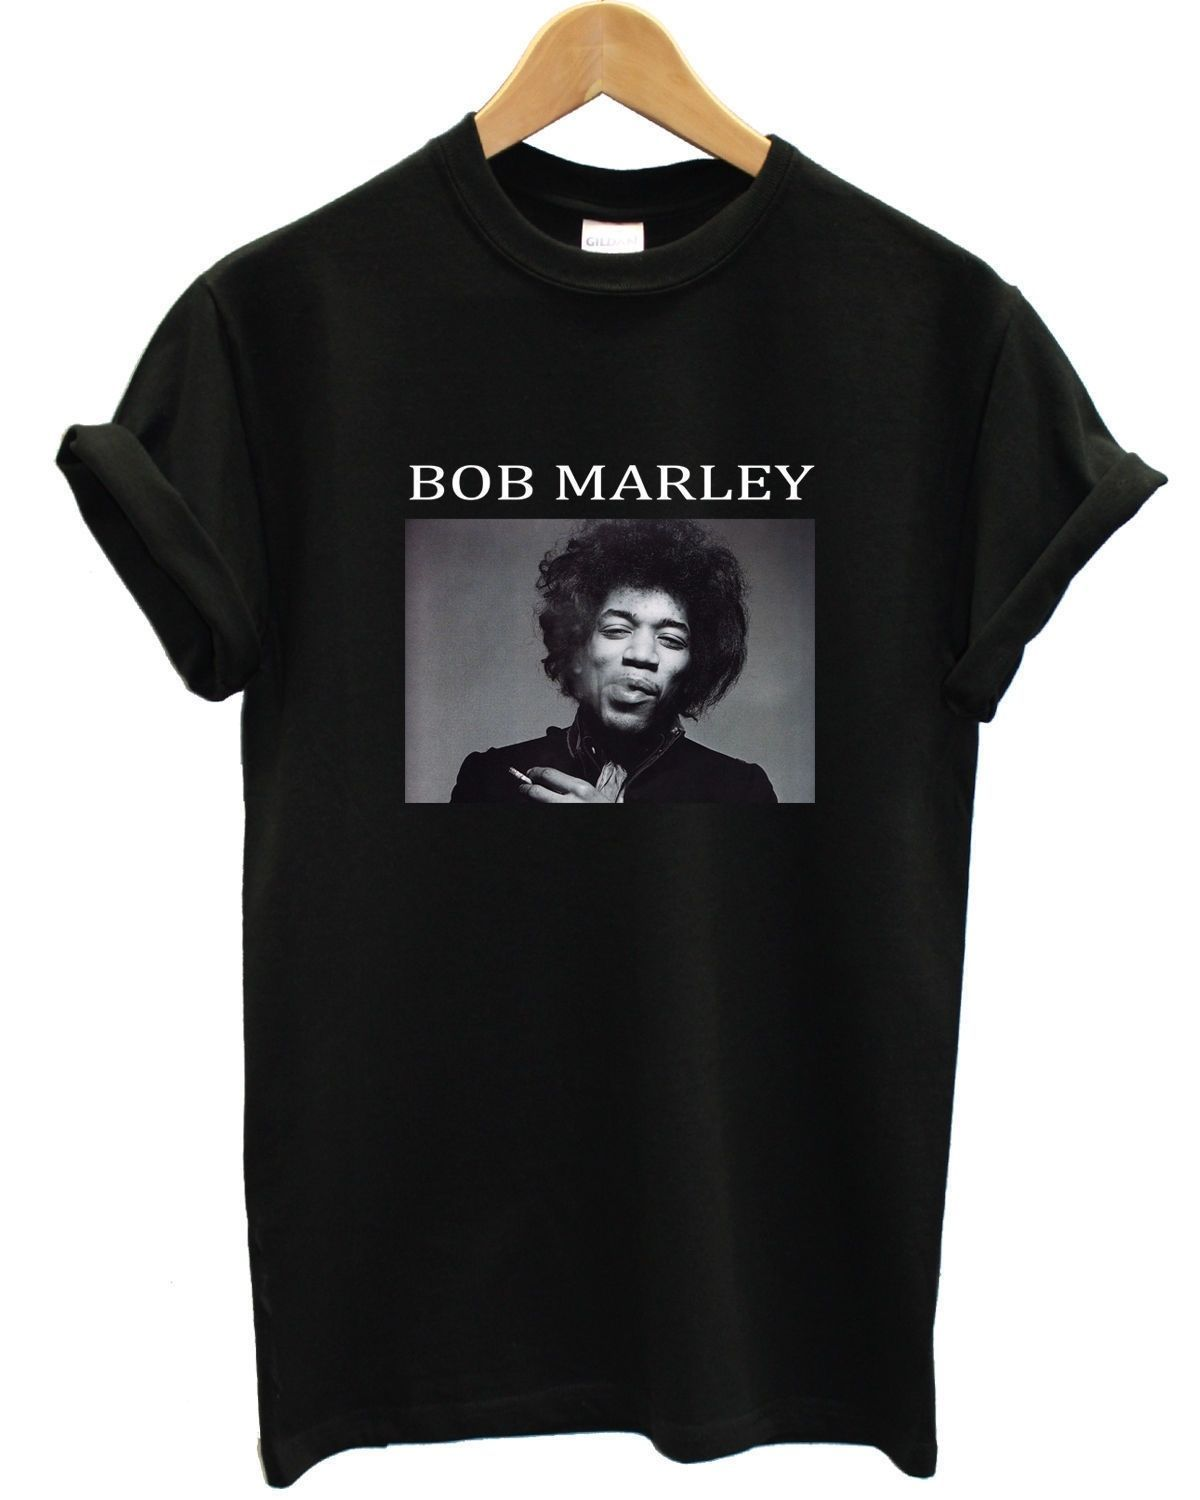 a826434b Bob Marley Jimi Hendrix T Shirt Parody Urban Fresh Funny Apparel Men Women  Kid #ebay #Fashion